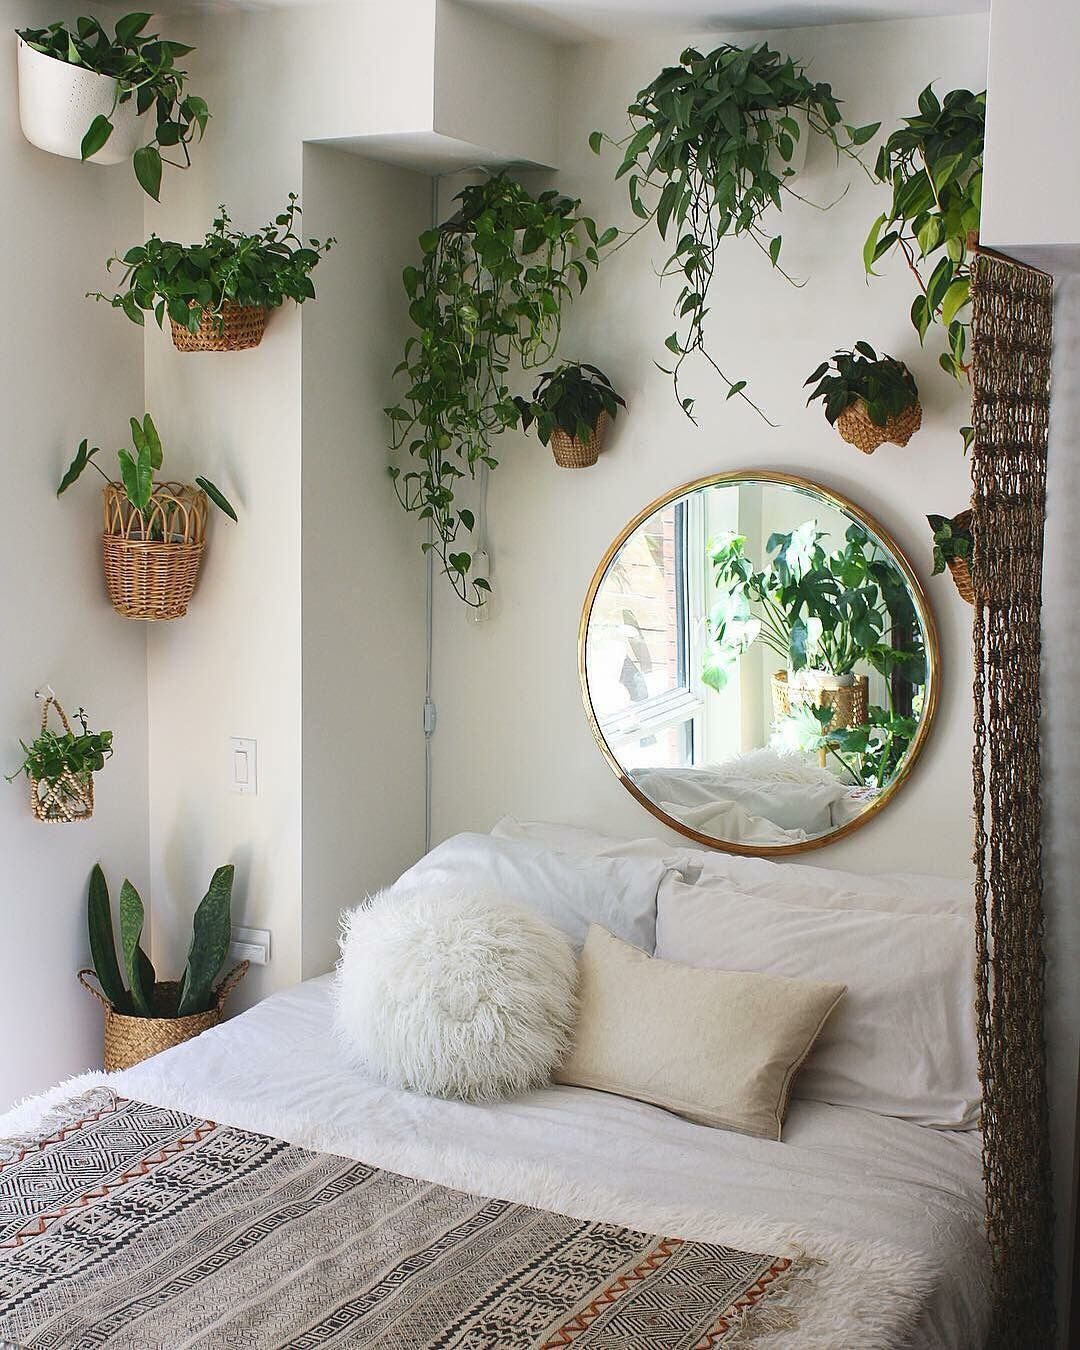 Best Room Room Decor Inspo Roominspo Minimalist Boho 400 x 300